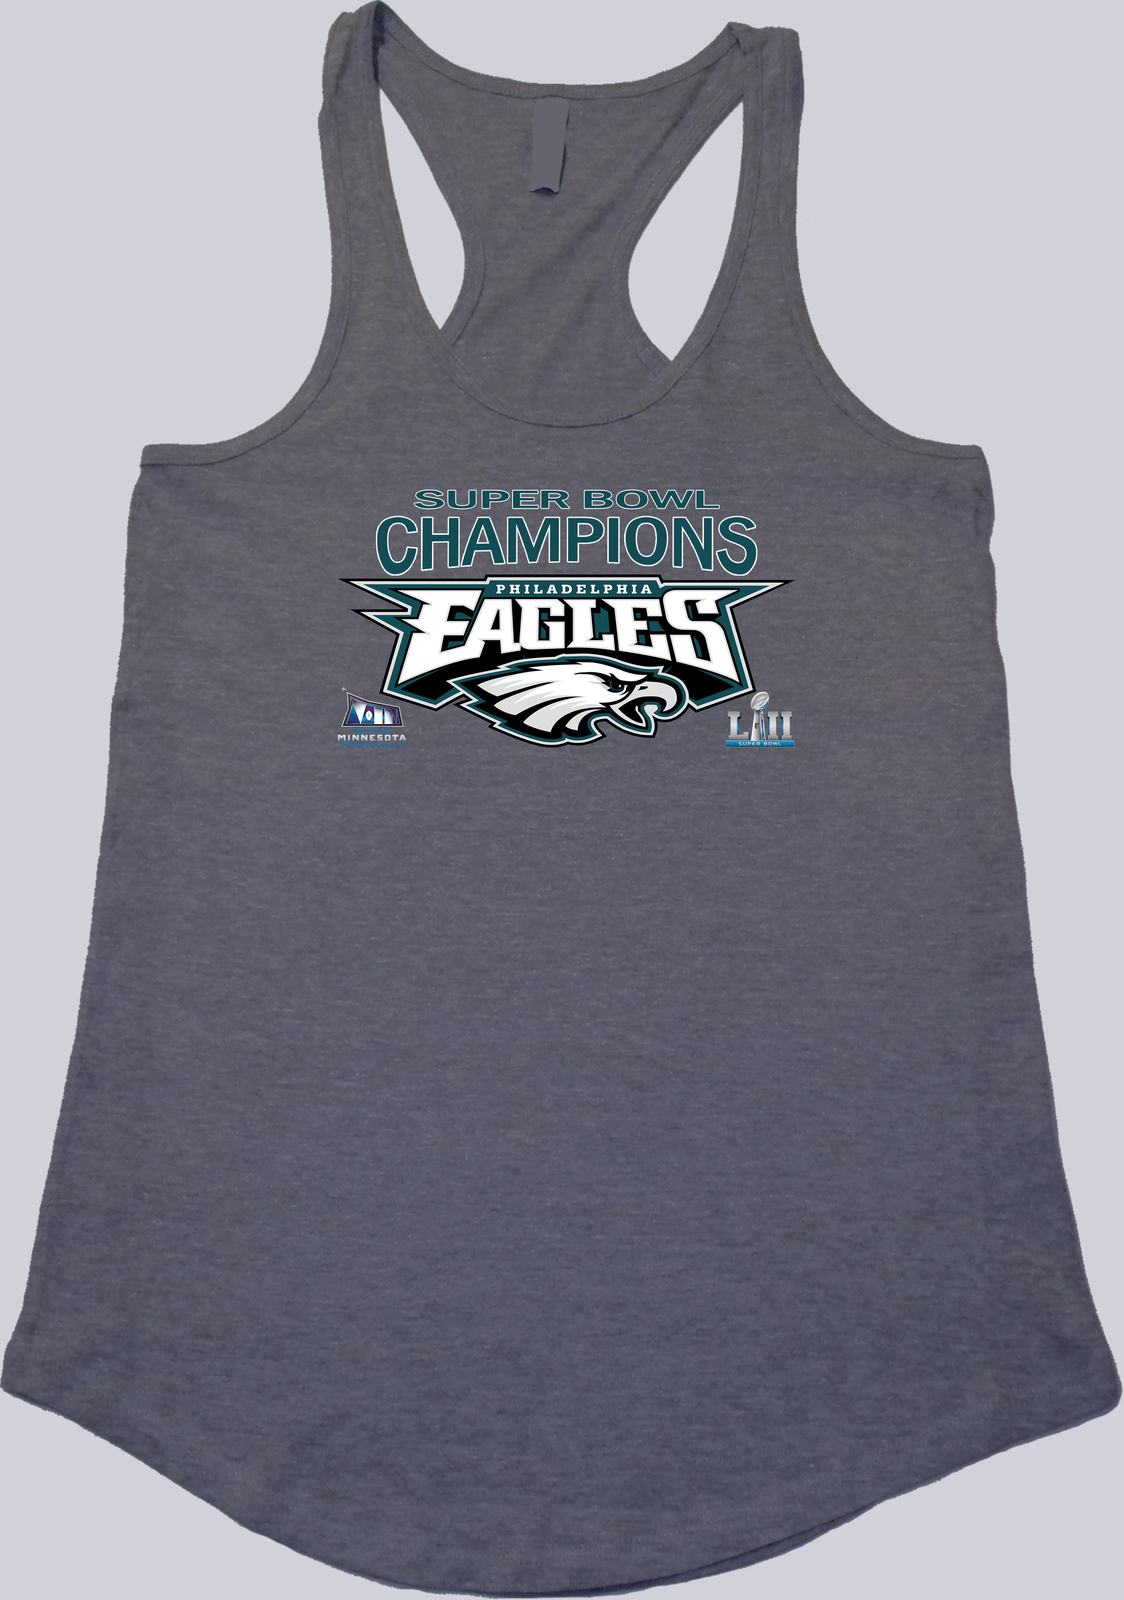 2018 Super Bowl LII Champions Philadelphia Eagles Women's Scallop Bottom Tanks